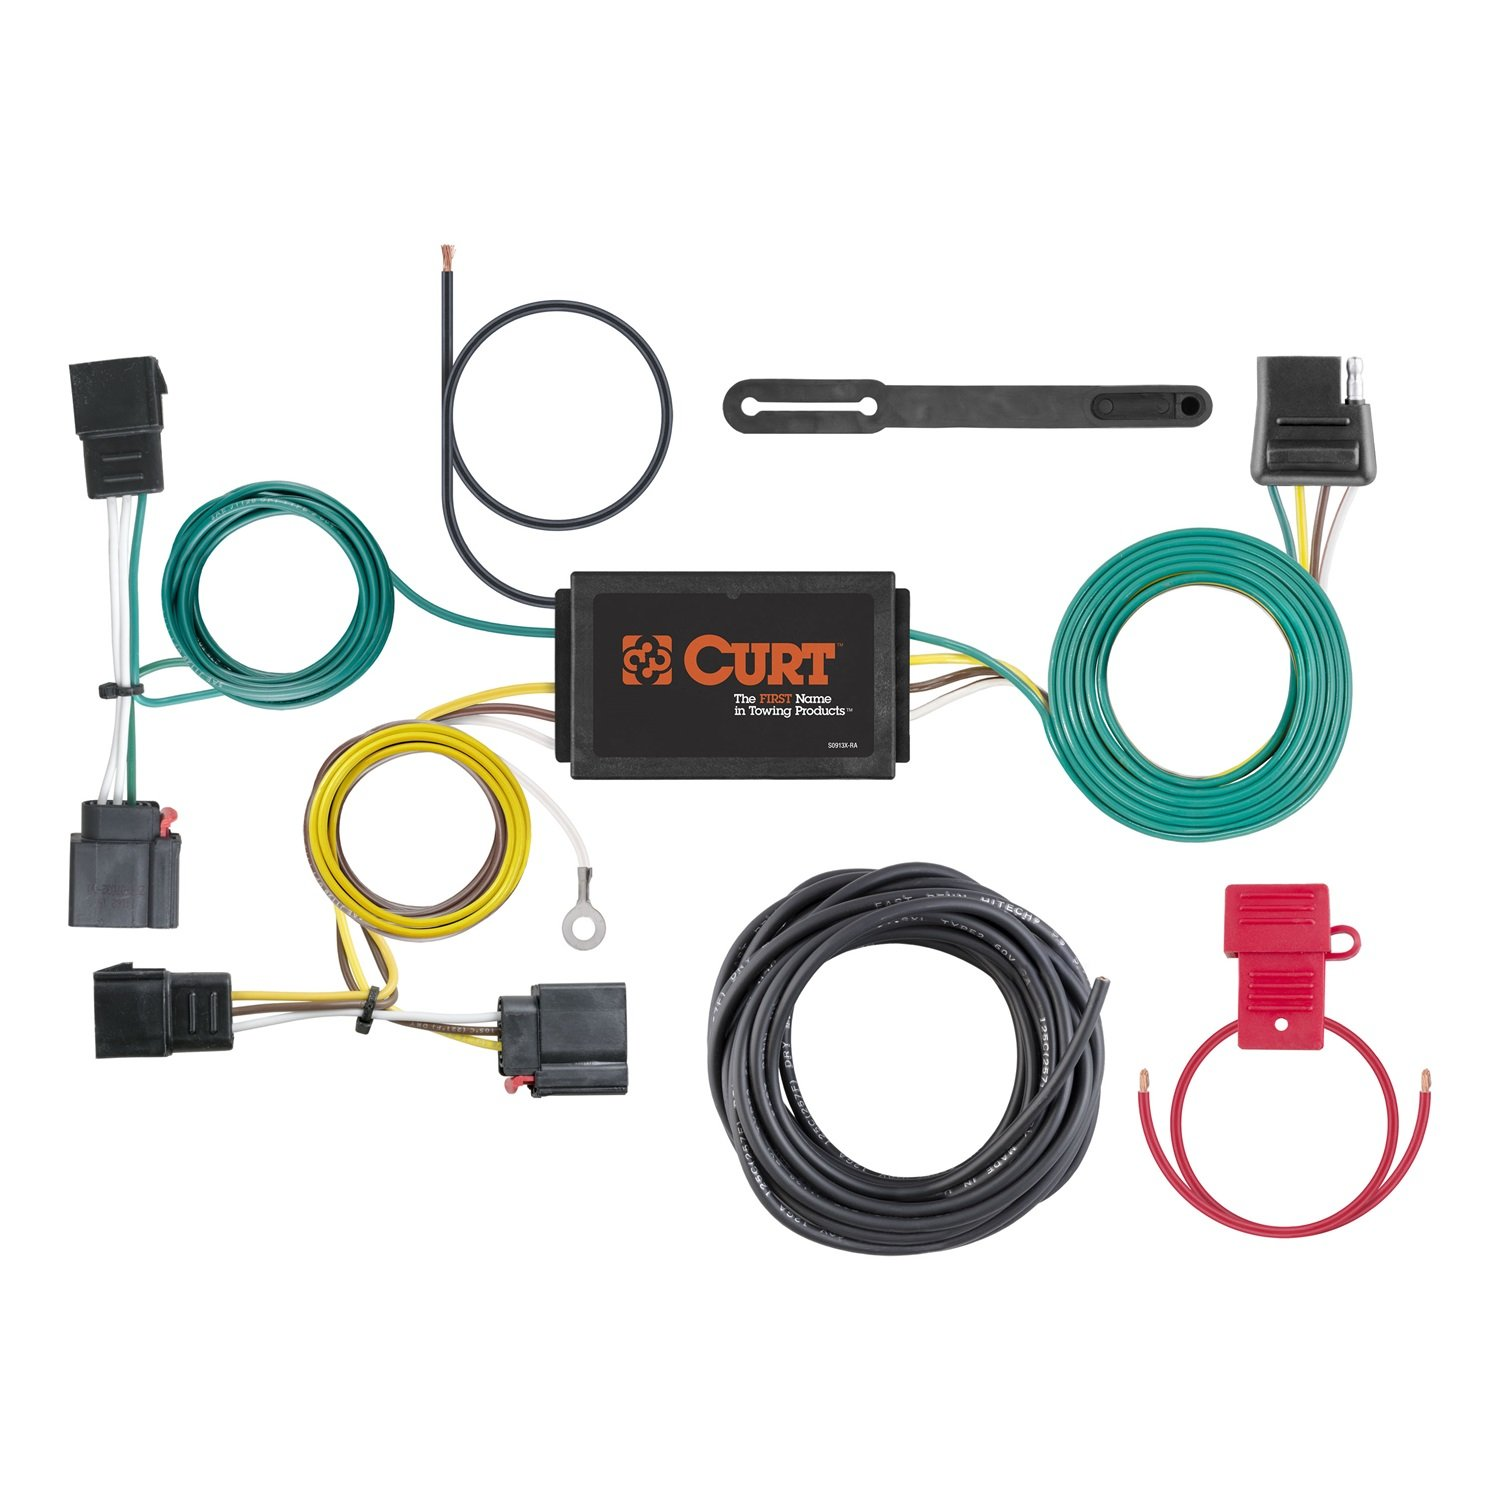 Amazon.com: CURT 56162 Custom Wiring Harness: Automotive on electrical harness, maxi-seal harness, dog harness, suspension harness, oxygen sensor extension harness, safety harness, fall protection harness, pony harness, engine harness, alpine stereo harness, battery harness, obd0 to obd1 conversion harness, radio harness, pet harness, amp bypass harness, nakamichi harness, cable harness,